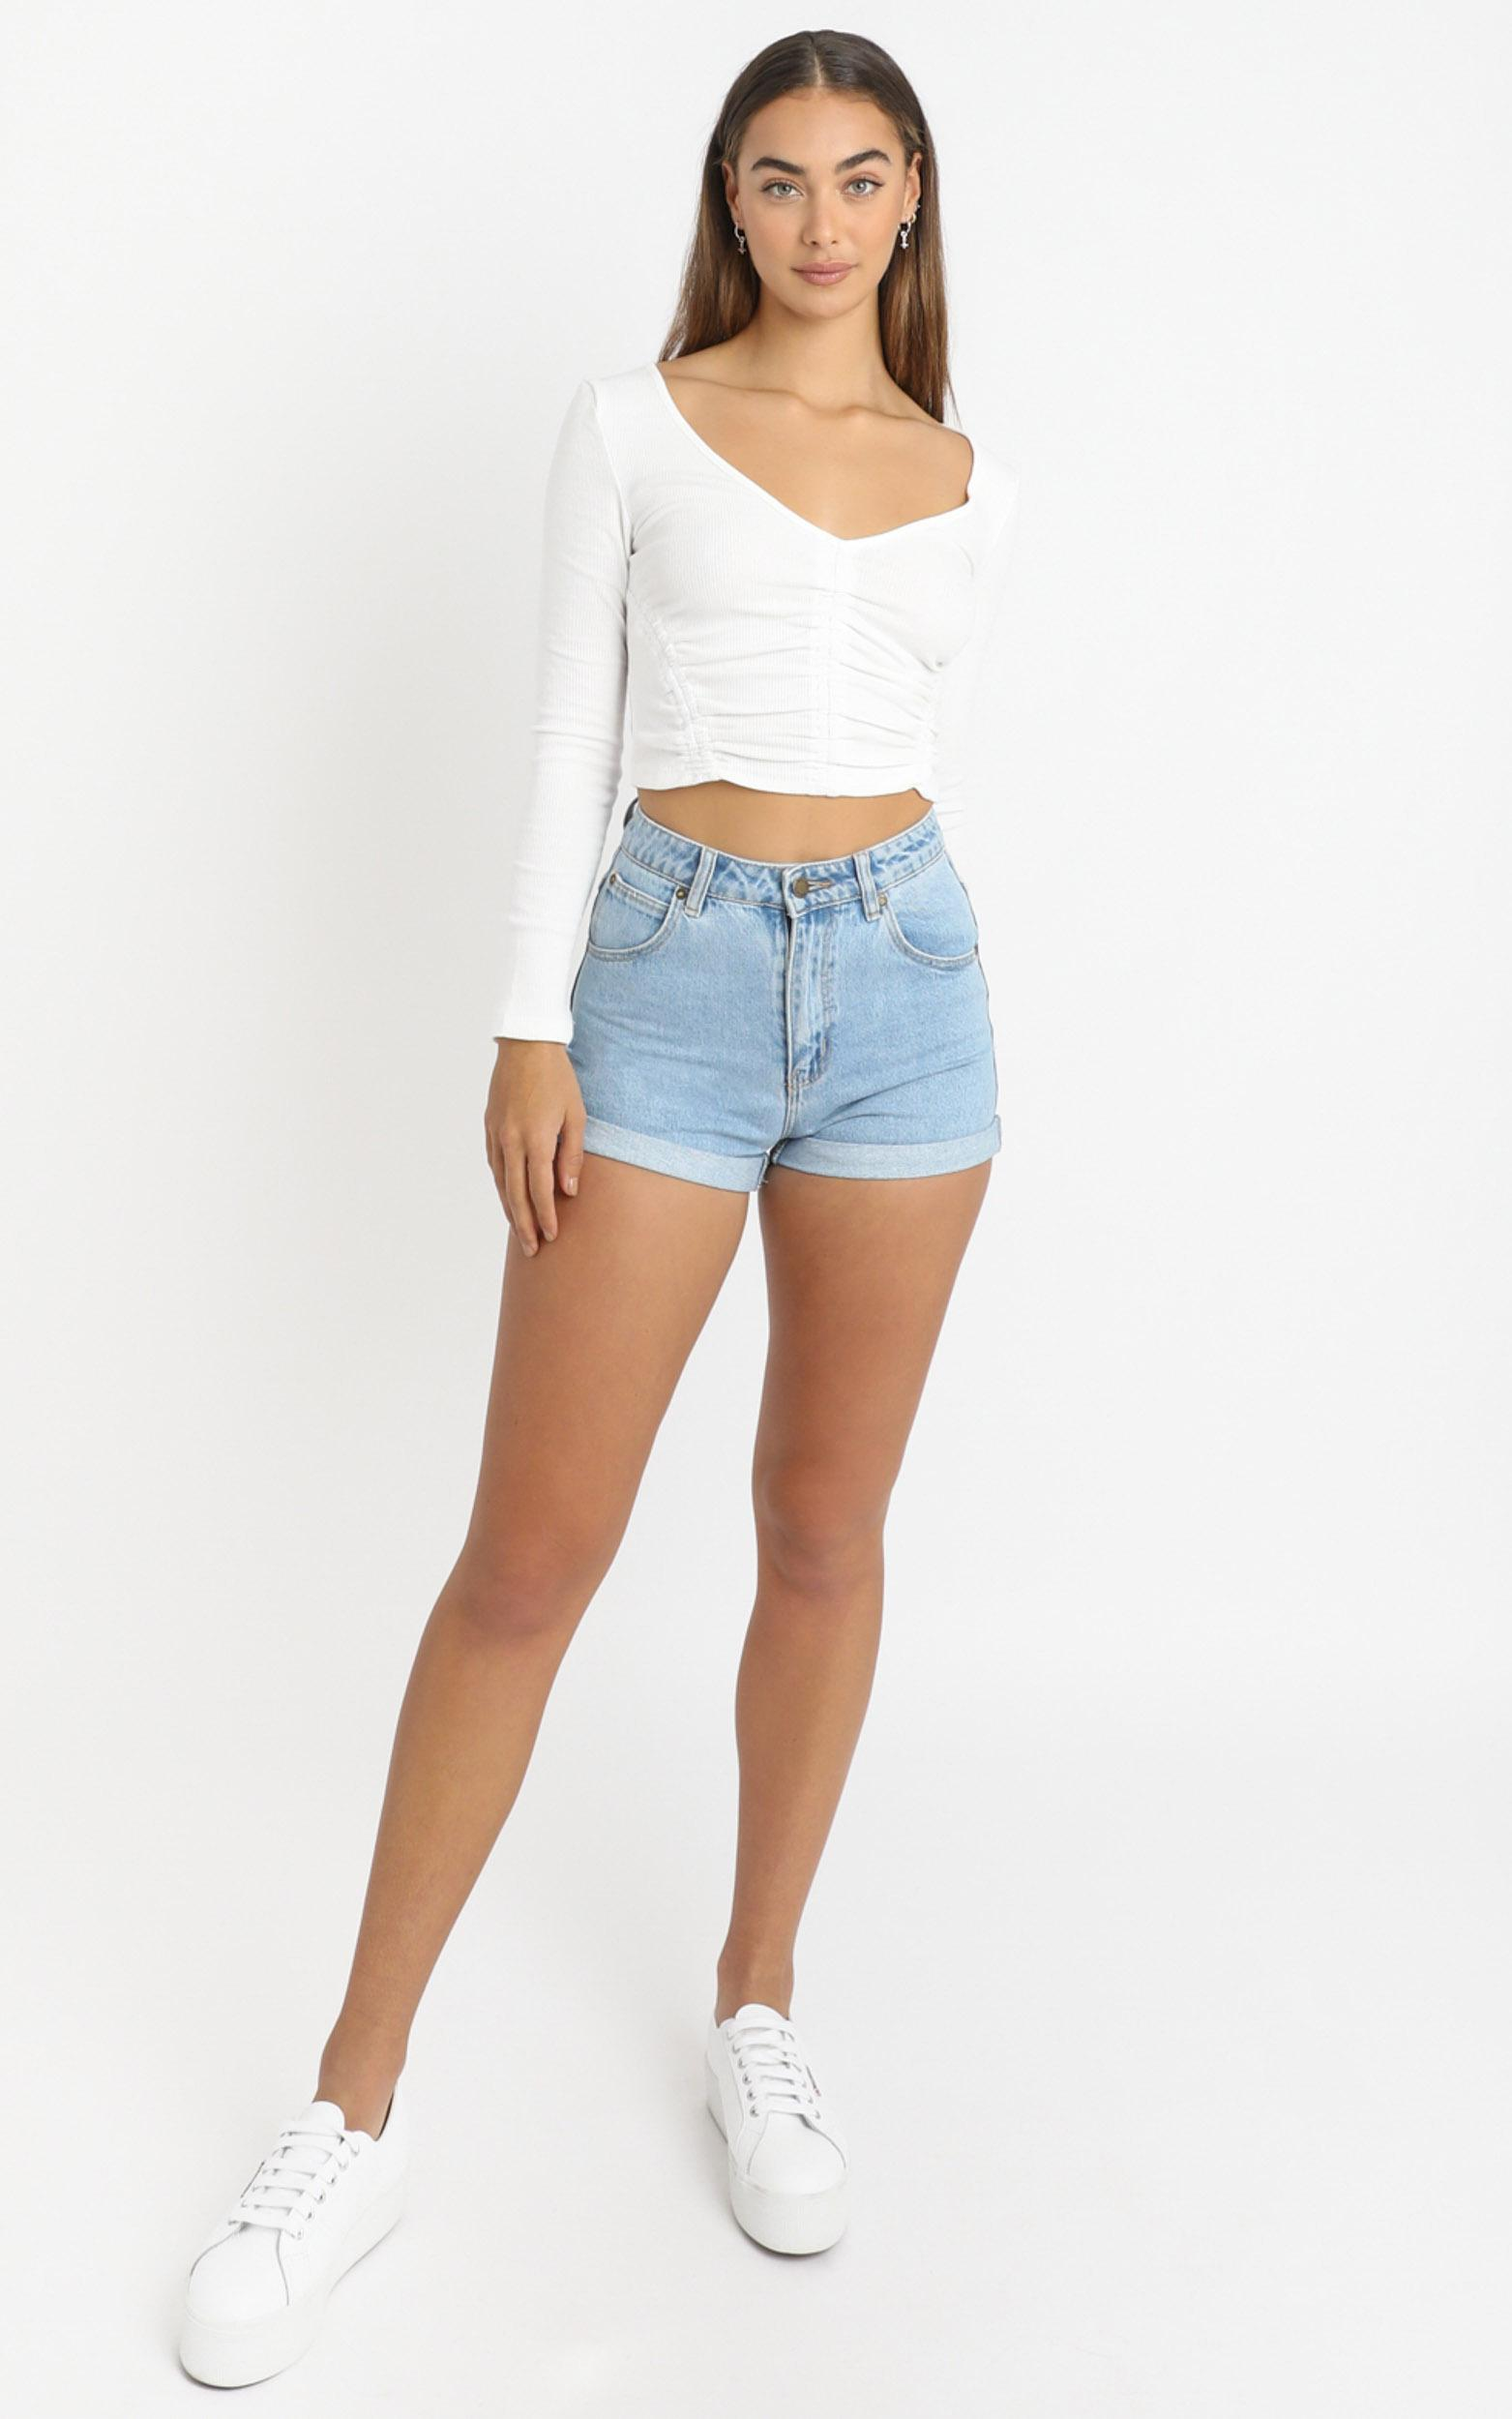 Jericho Top in White - 6 (XS), White, hi-res image number null